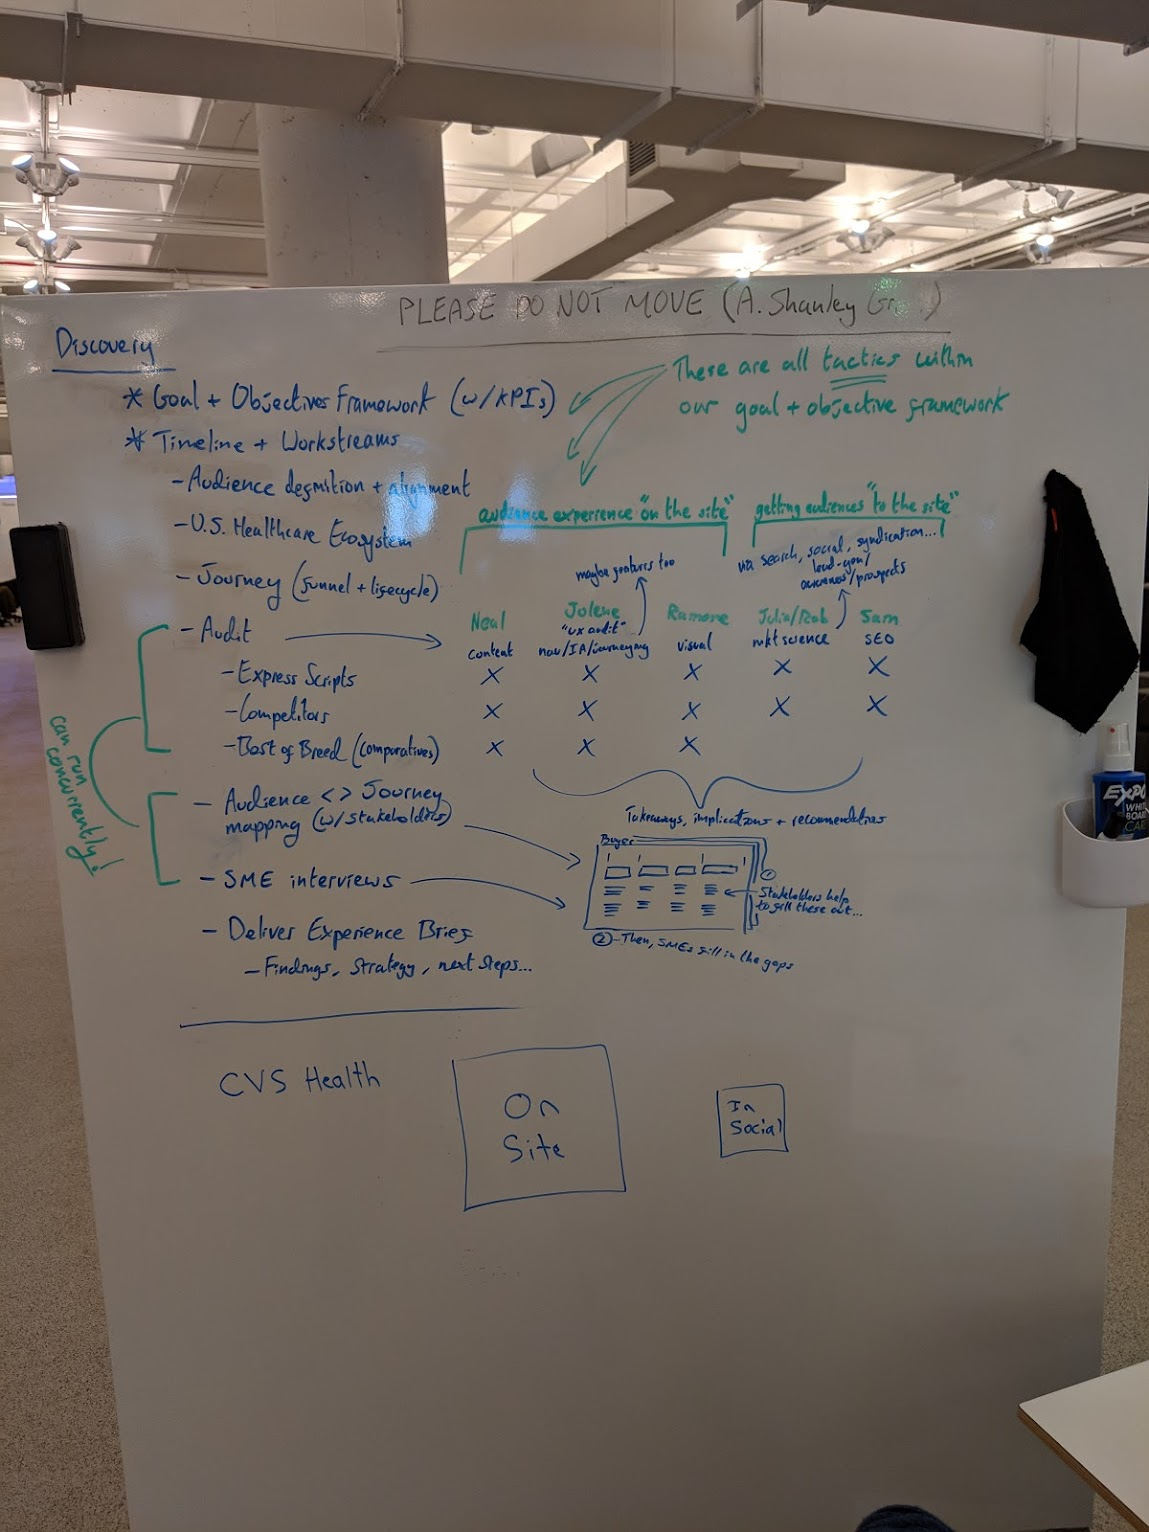 The Experience team plan of attack